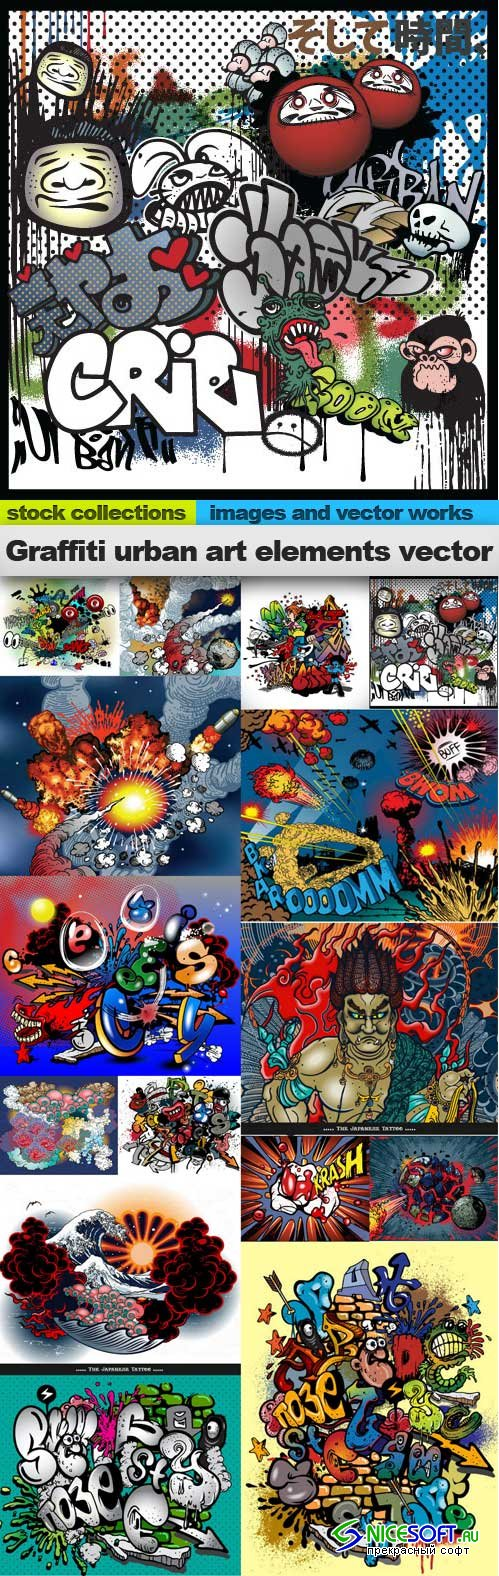 Graffiti urban art elements vector, 15 x EPS